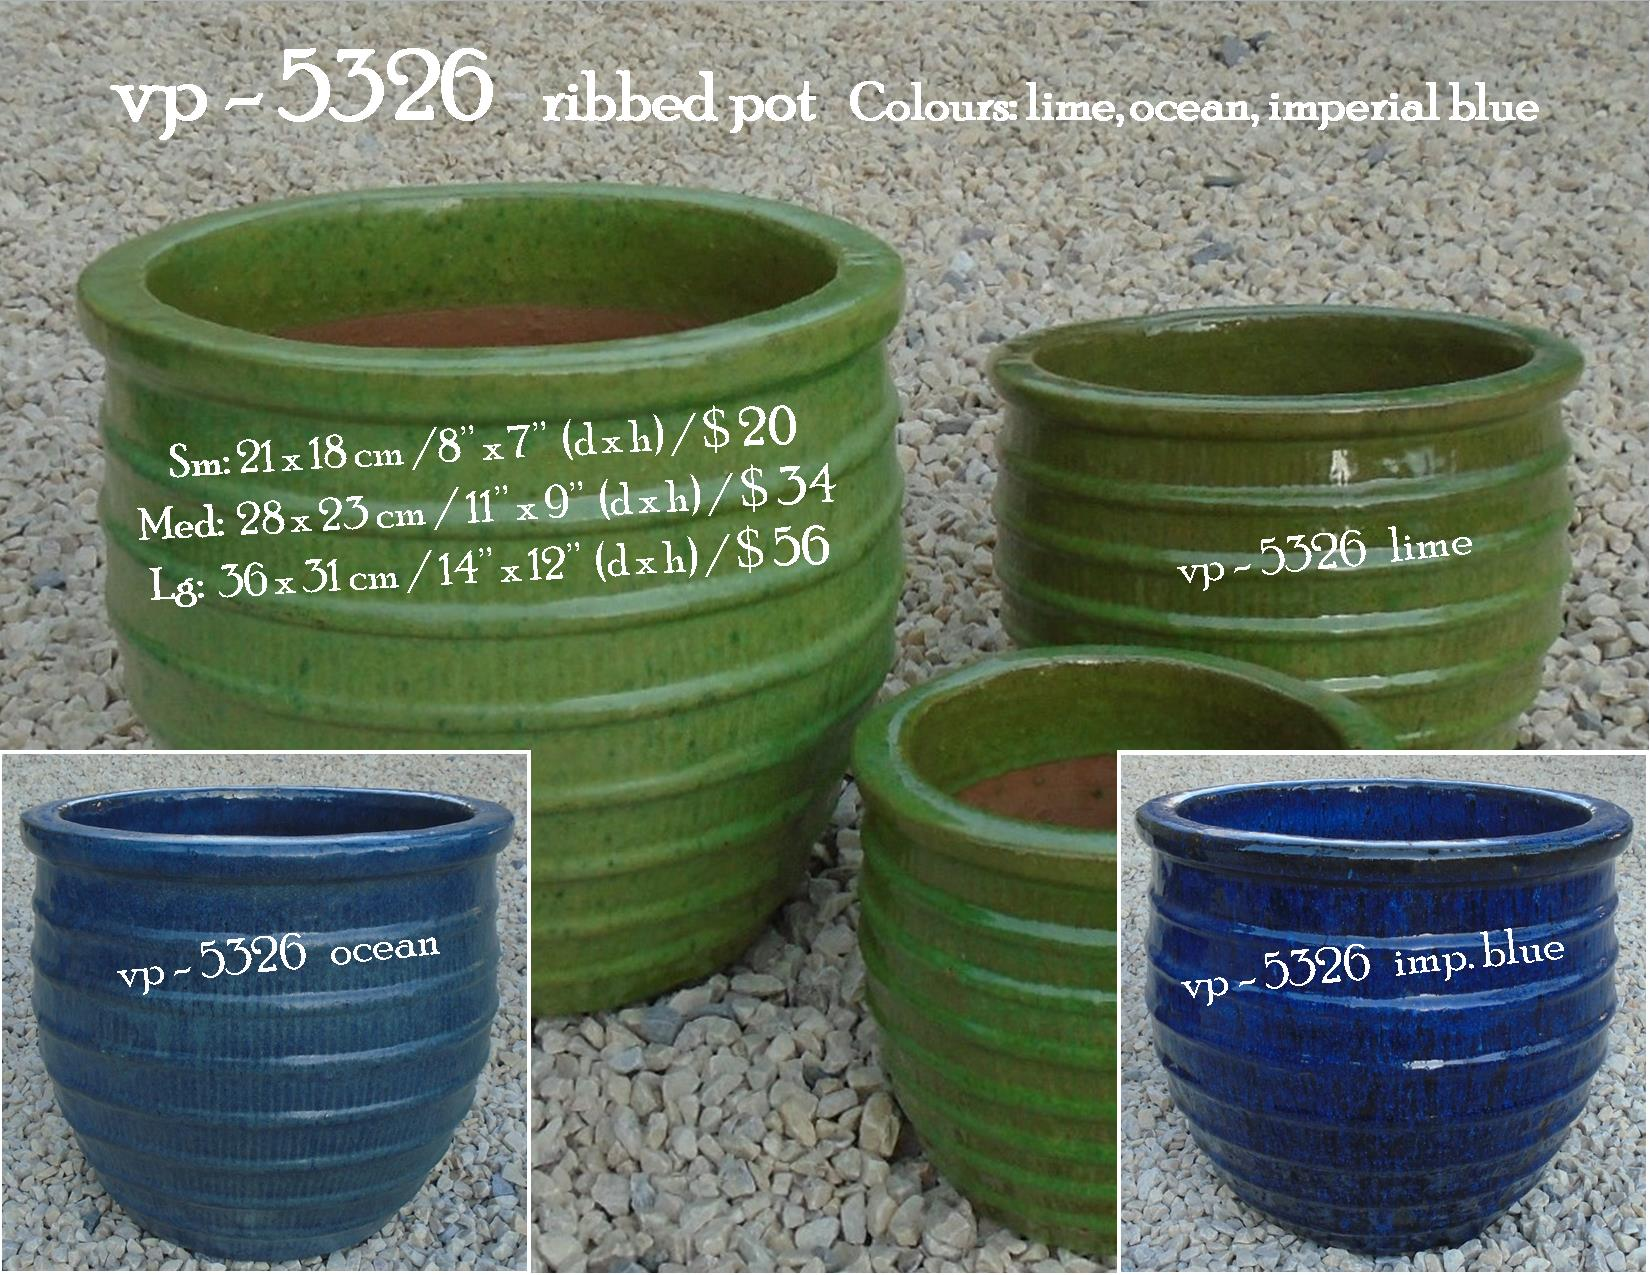 vp - 5326   ribbed pot